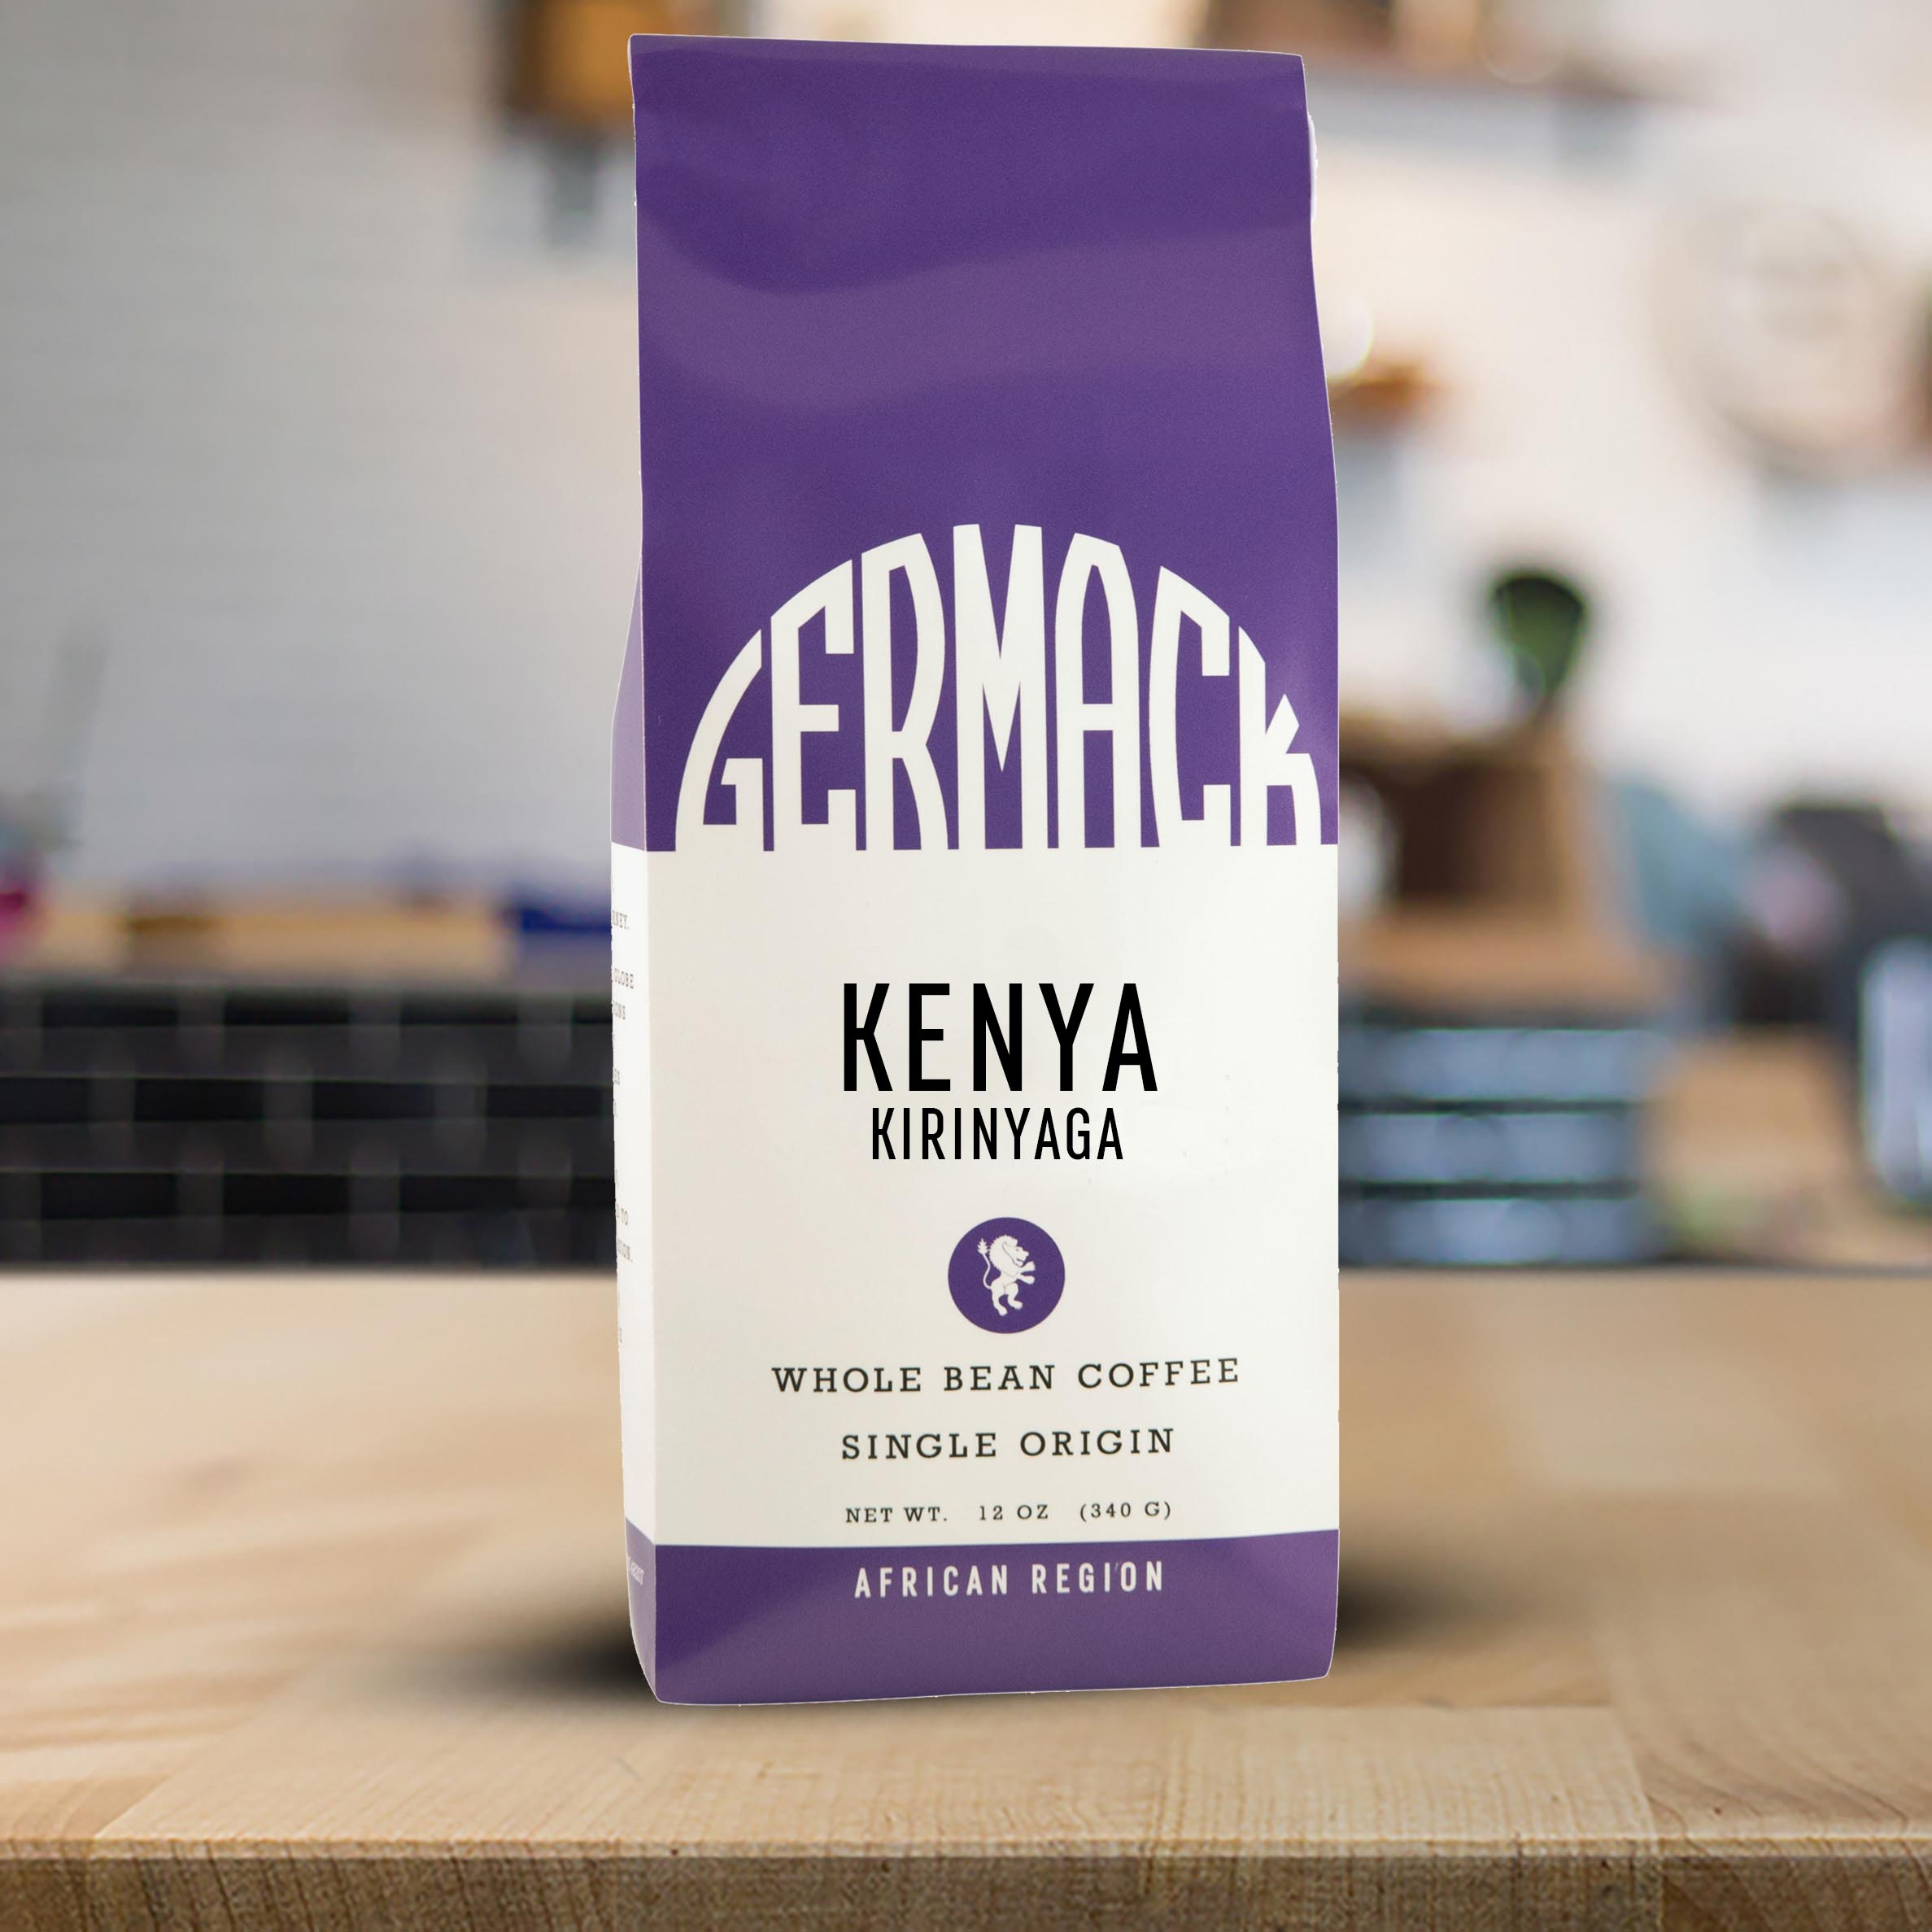 Germack Coffee Kenya Kirinyaga - 12 oz